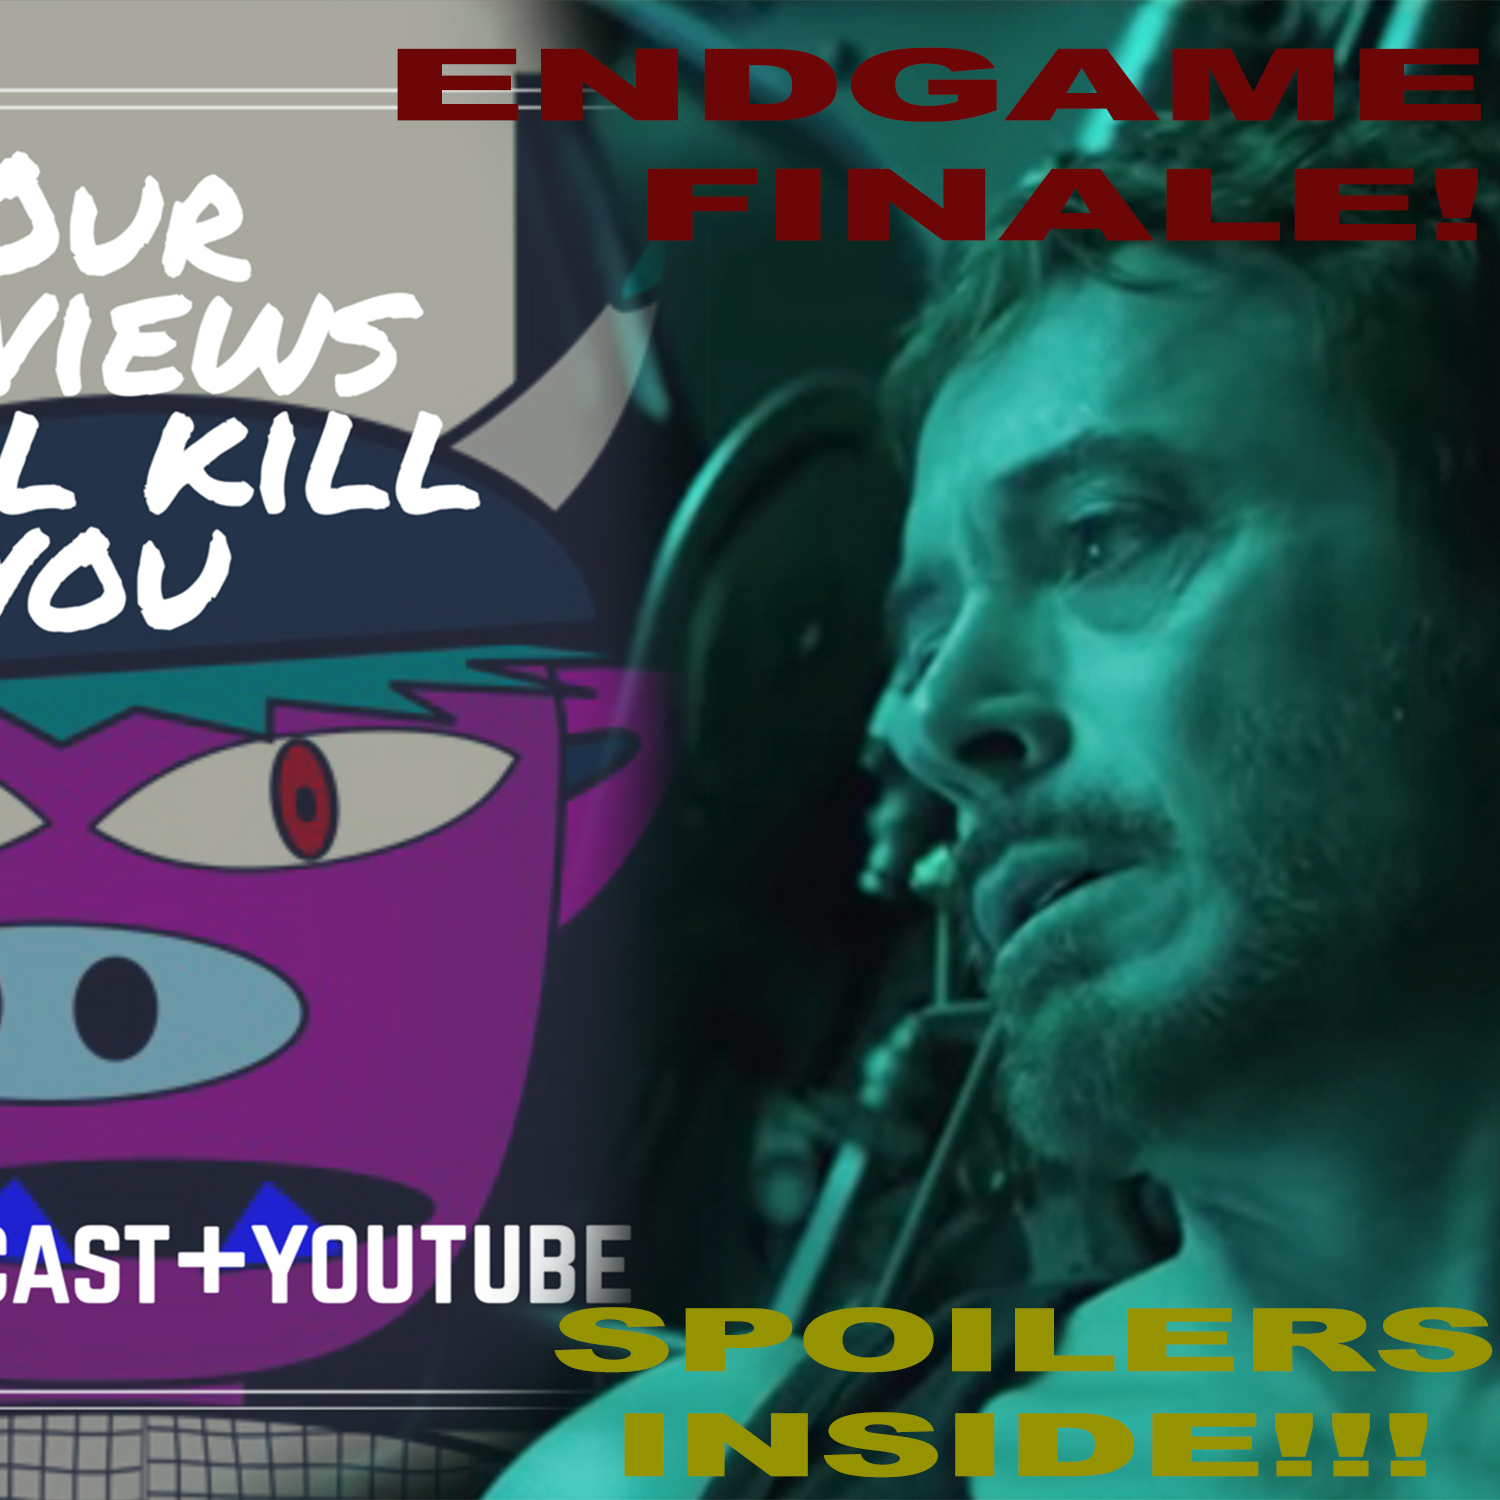 Here we are. The Endgame has finally arrived! If you have not seen this movie, do not go any further! This episode is chock full of spoilers. Seriously, if you have not watched Avengers: Endgame, do not listen to this episode! The boys of OrkU go after Endgame hard, and they do not hold back. If you don't understand the easter eggs or the throwbacks, then you need to listen. The boys take the the whole movie and break it down. Follow this episode and get a much better understanding of the Avengers Universe!